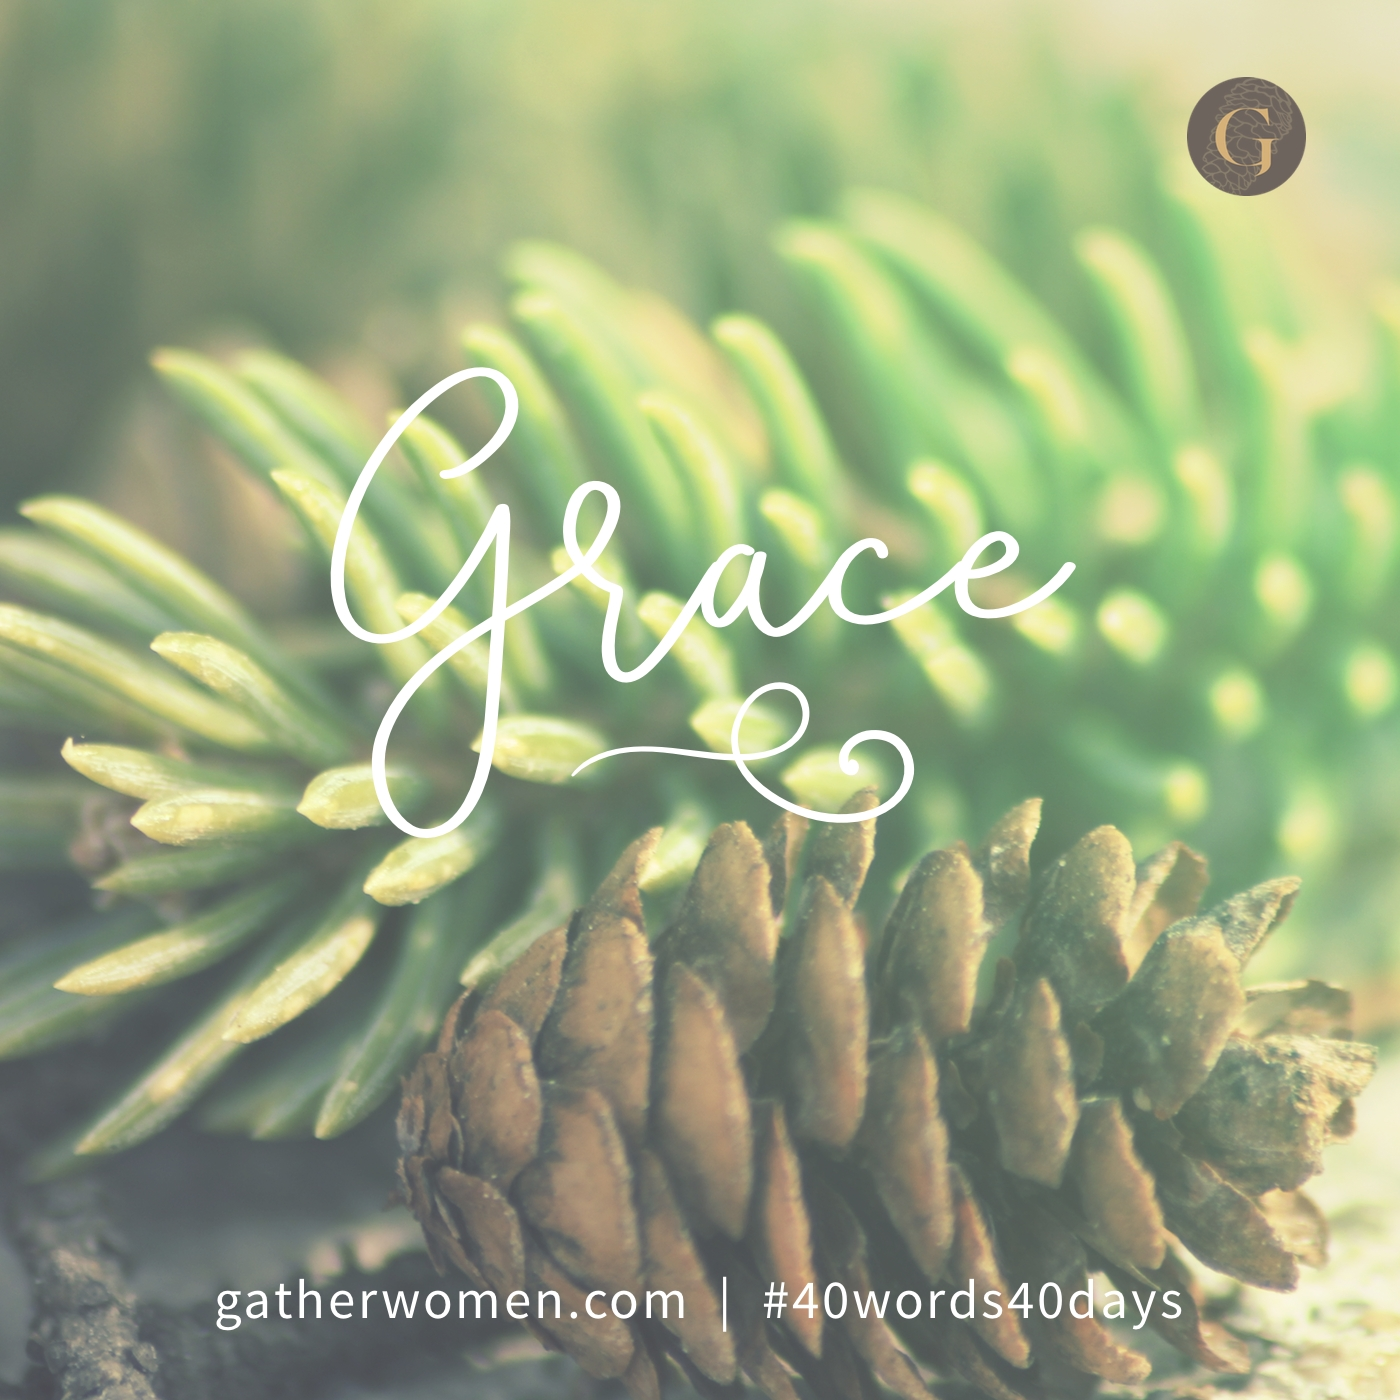 From his fullness we have all received, grace upon grace. John 1:1